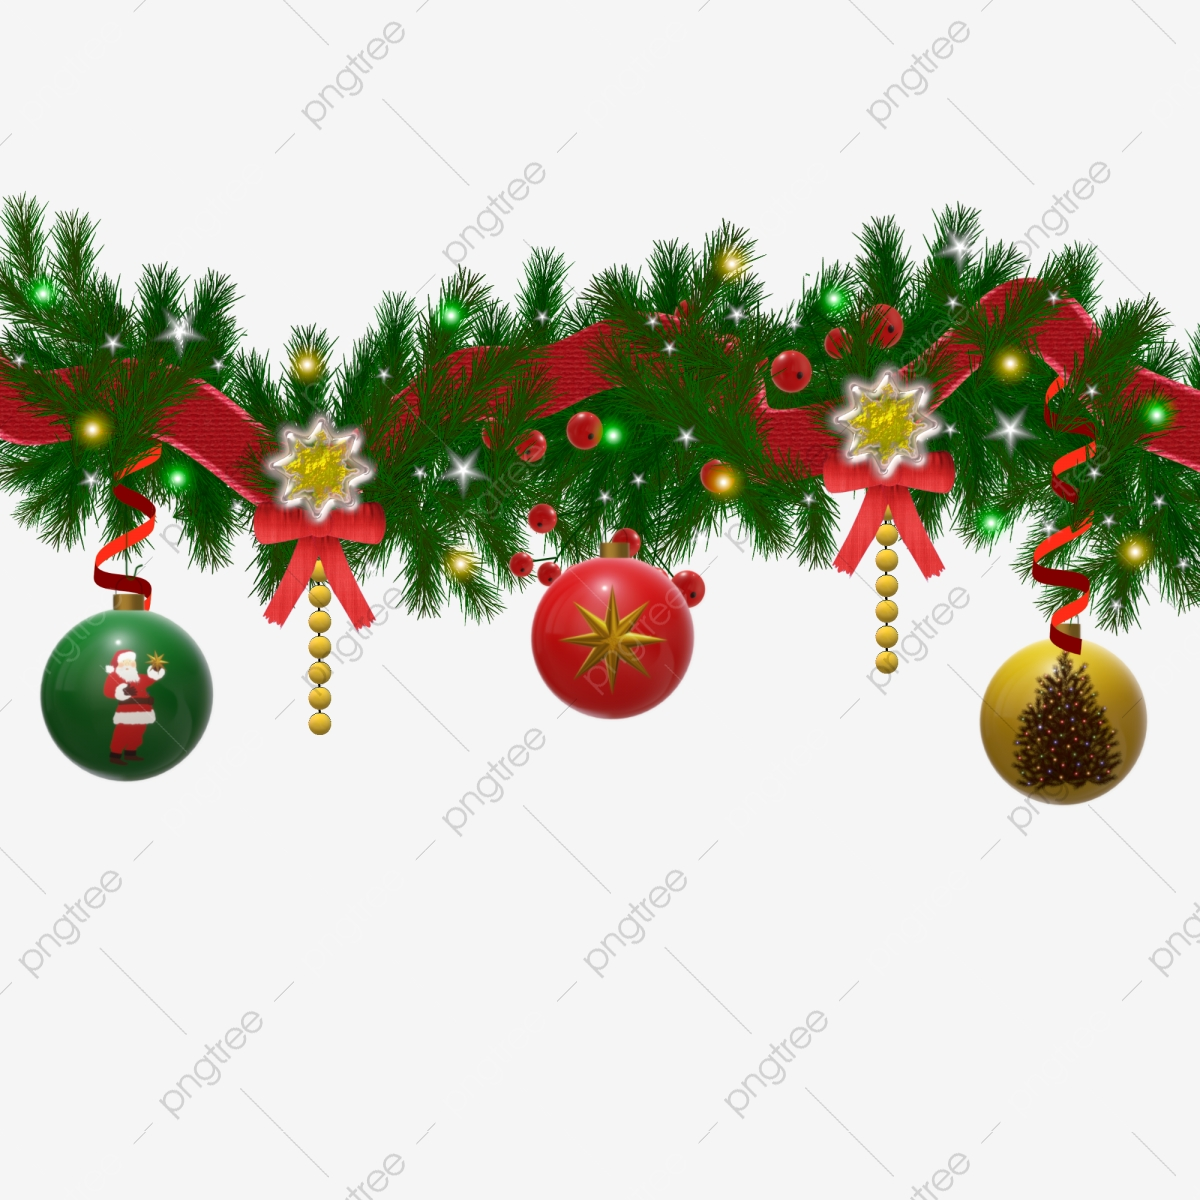 Christmas Decoration Pine Branches With Light Effect Garland Christmas Decoration Decorative Element Png And Vector With Transparent Background For Free Download